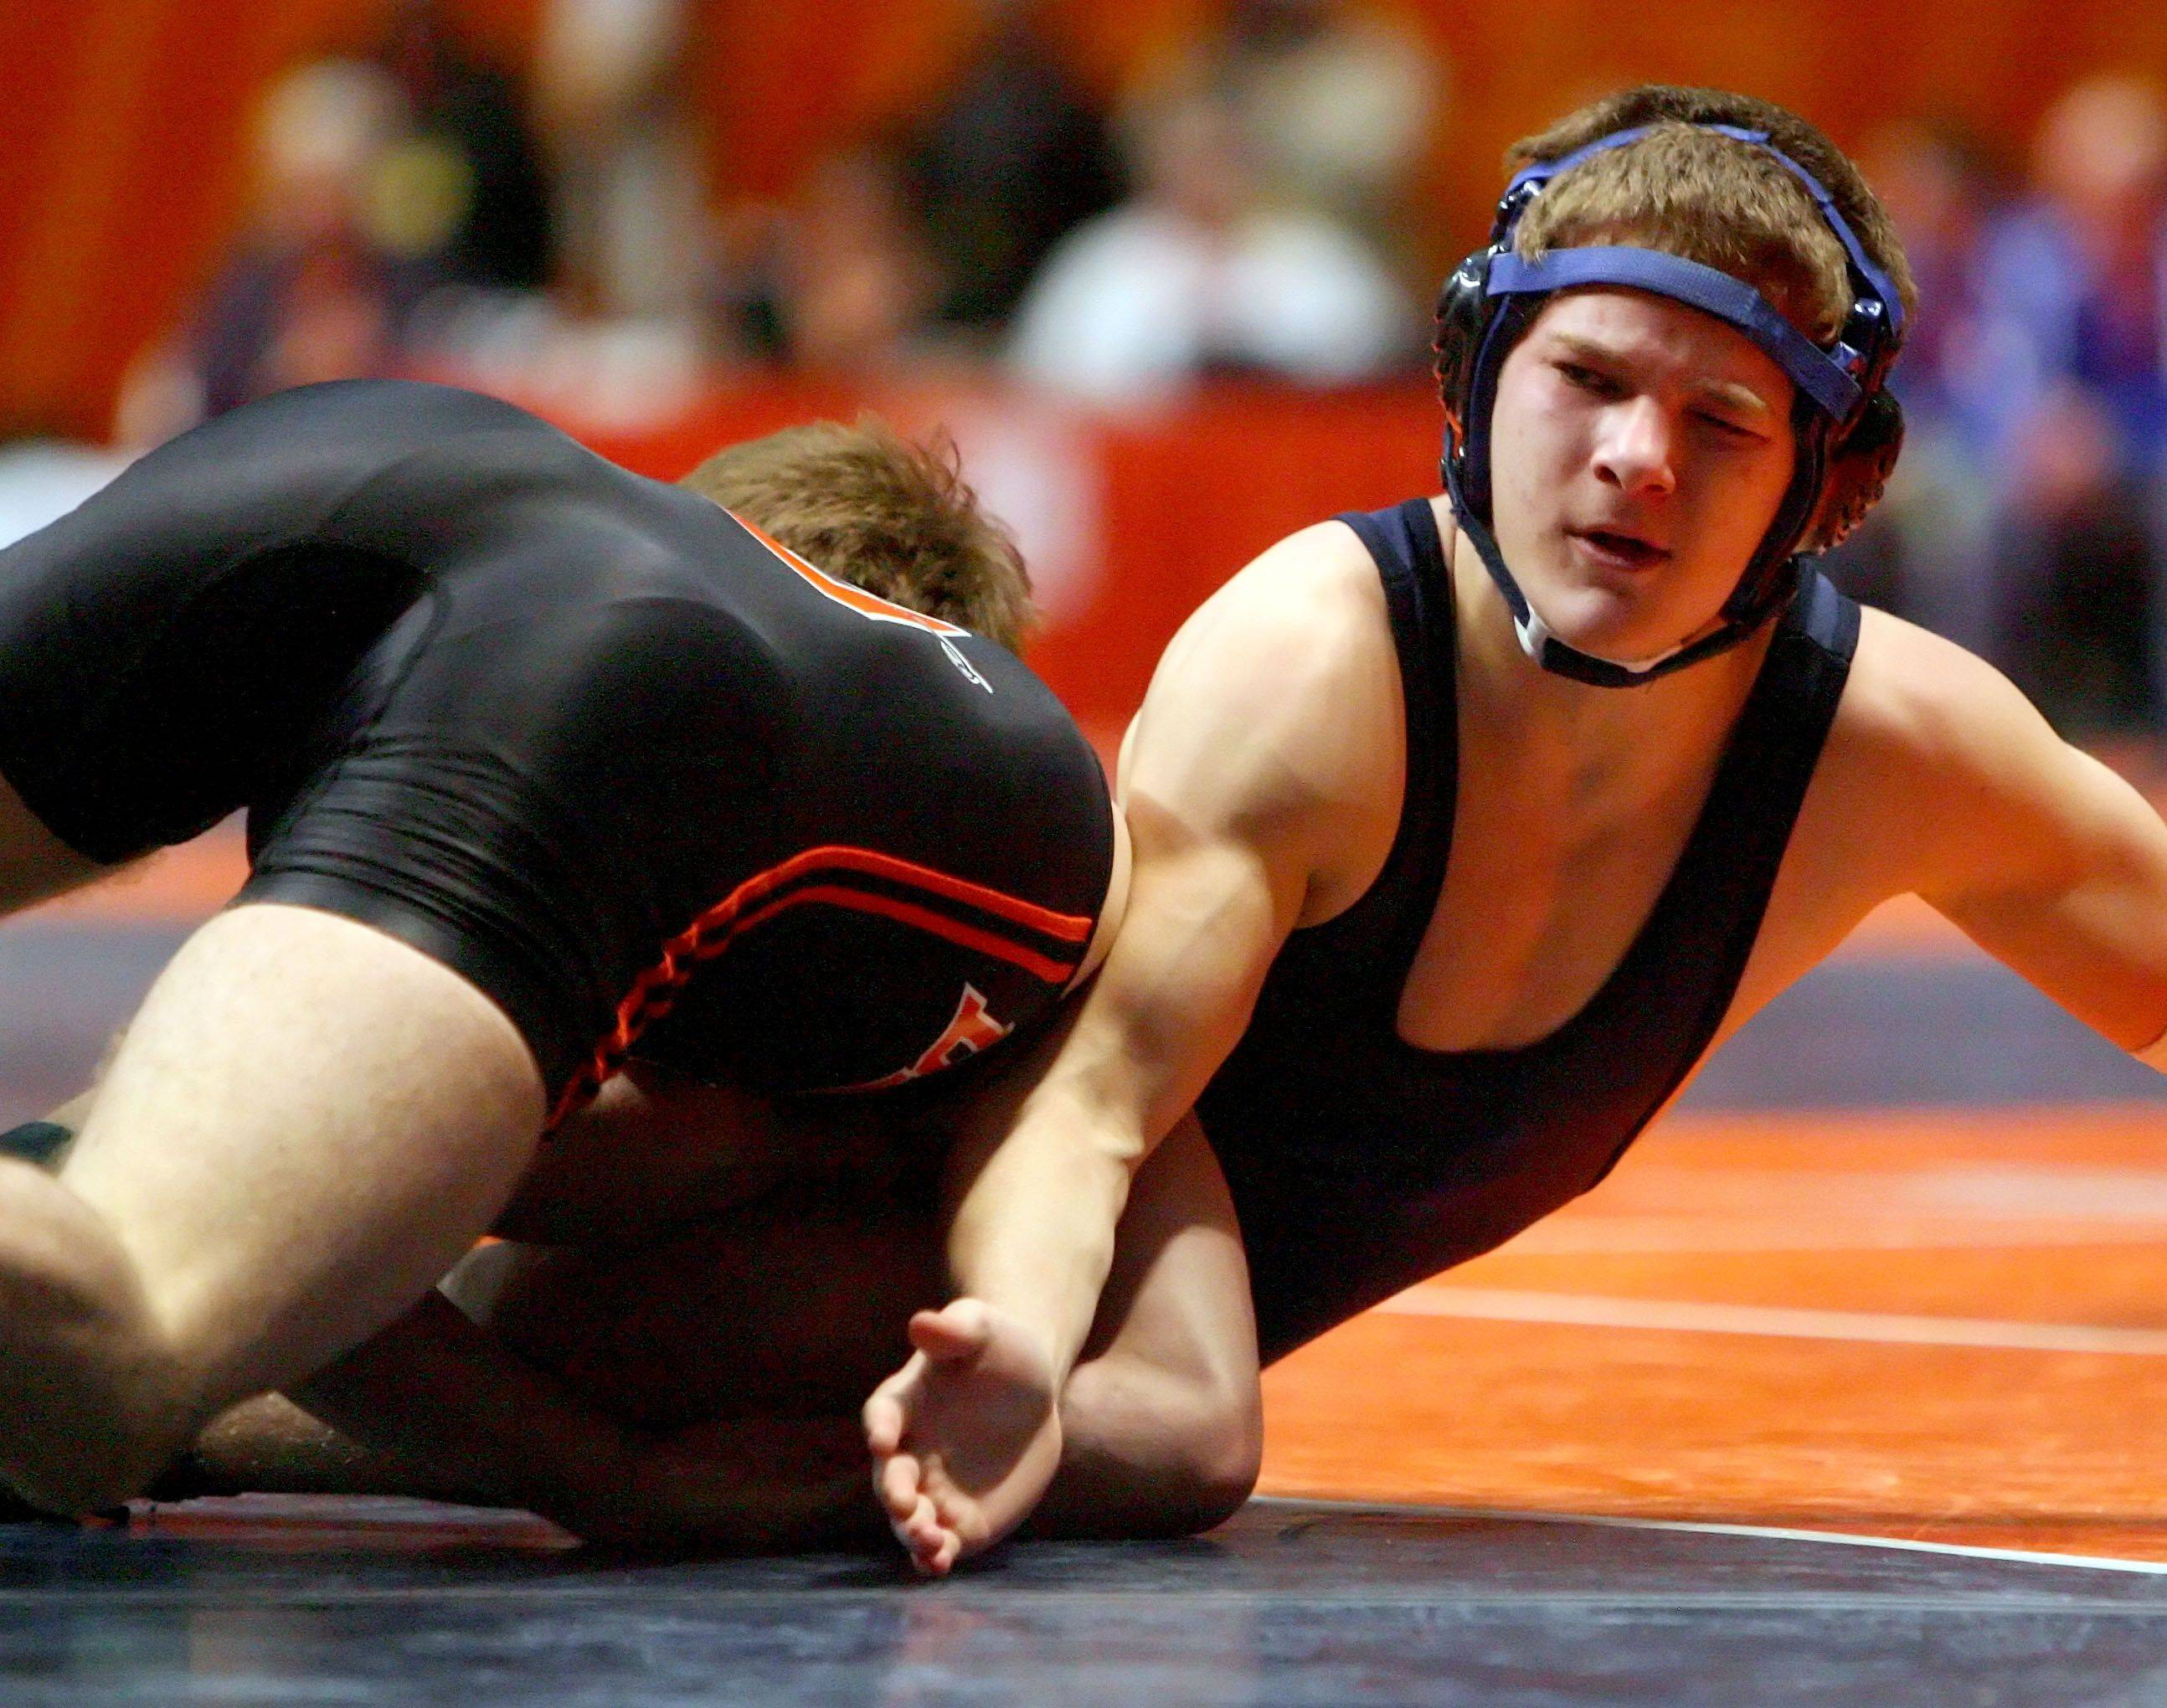 Cary Grove's Trent Atkins Wrestles Dekalb's Doug Johnson at 125 pounds in the 3a wrestlebacks during state wrestling Friday in Champaign.